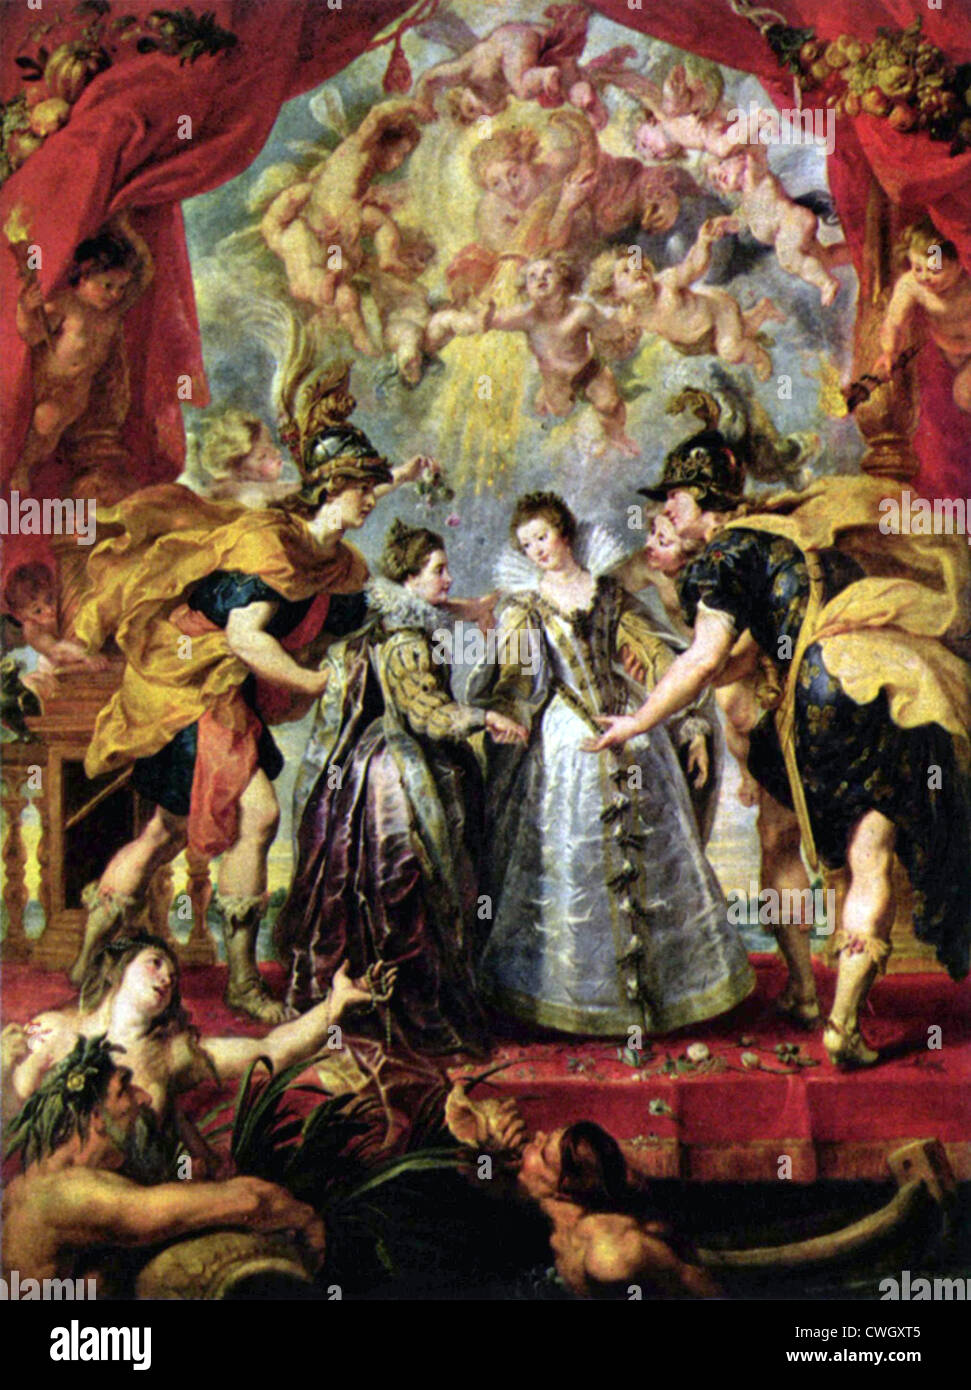 The Exchange of Princesses, from the Marie de' Medici Cycle. - Stock Image